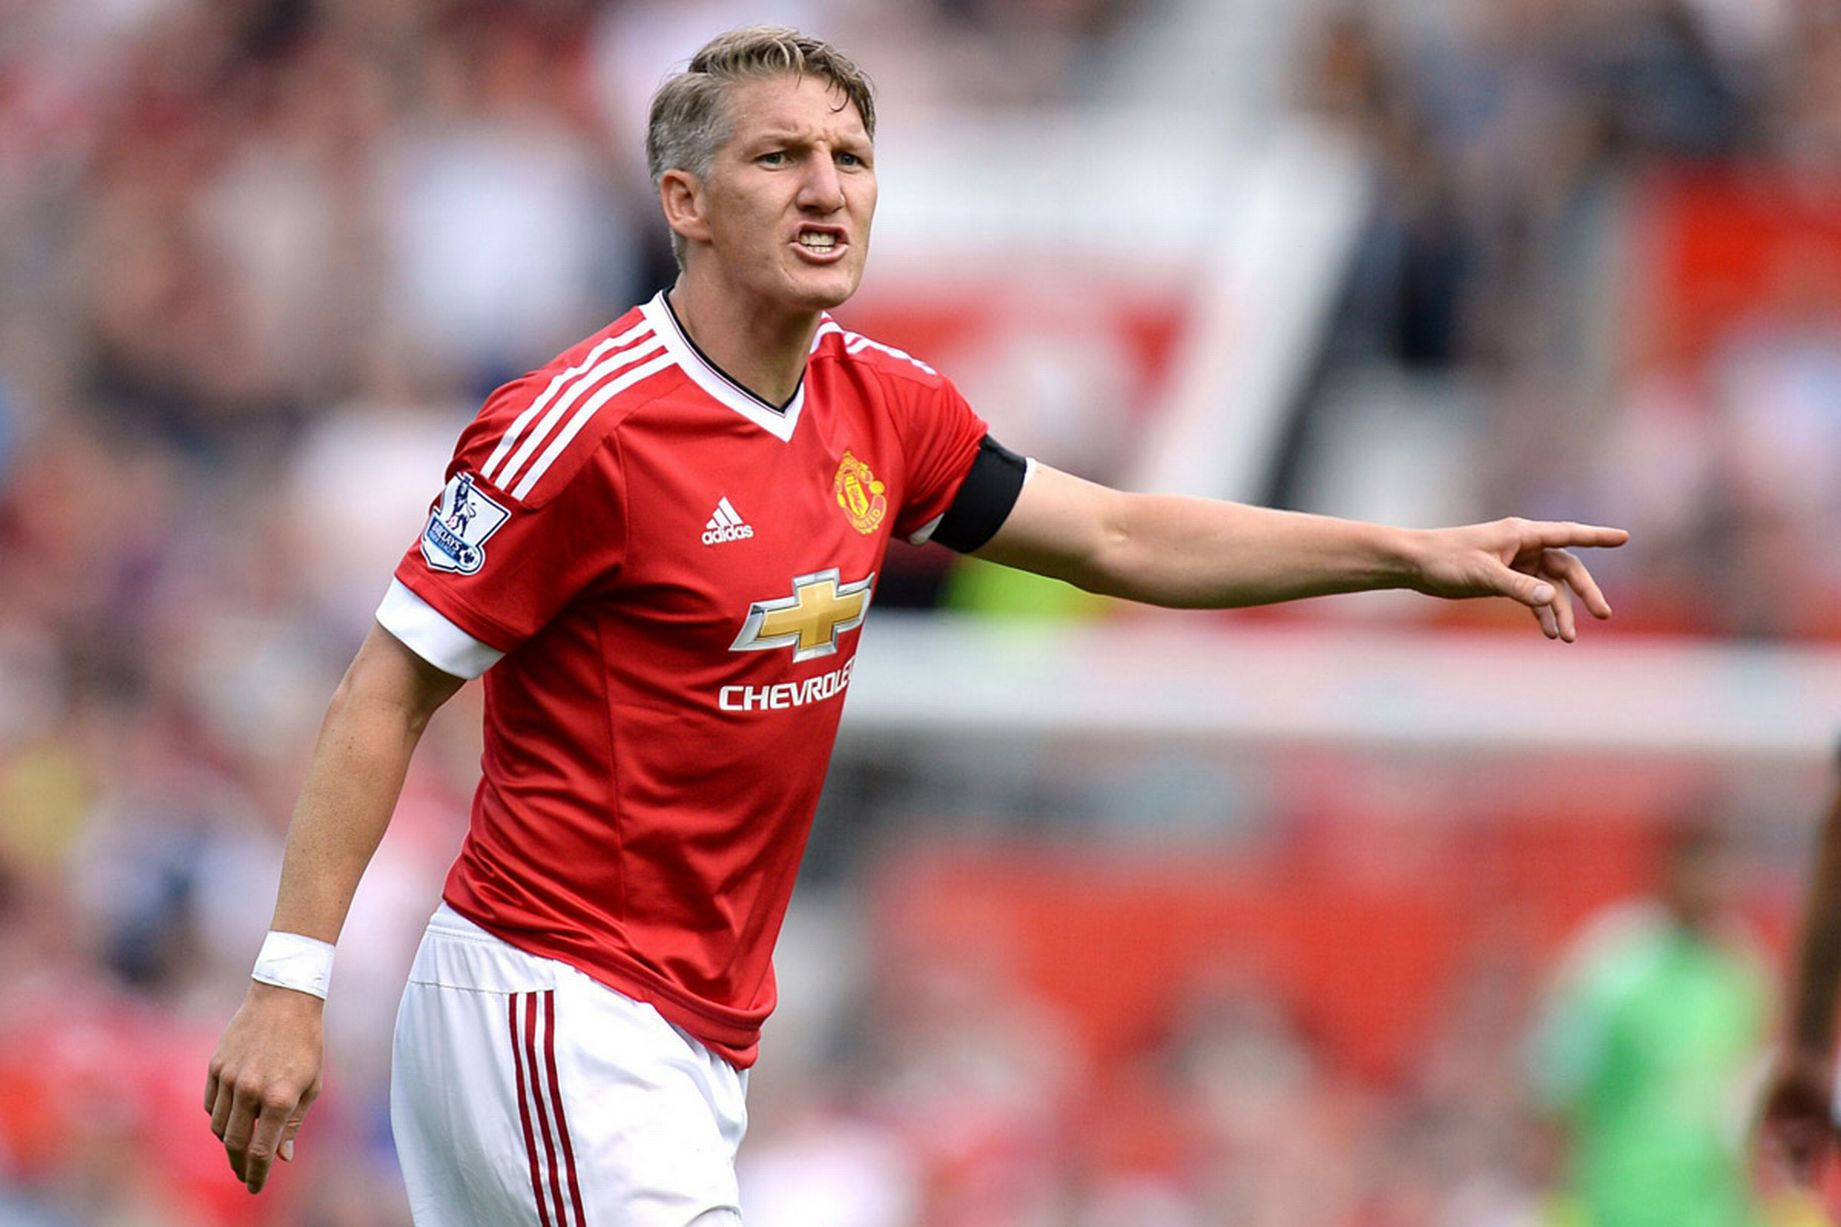 Schweinsteiger is no longer as good as Carrick but has taken the Englishman's place in the side